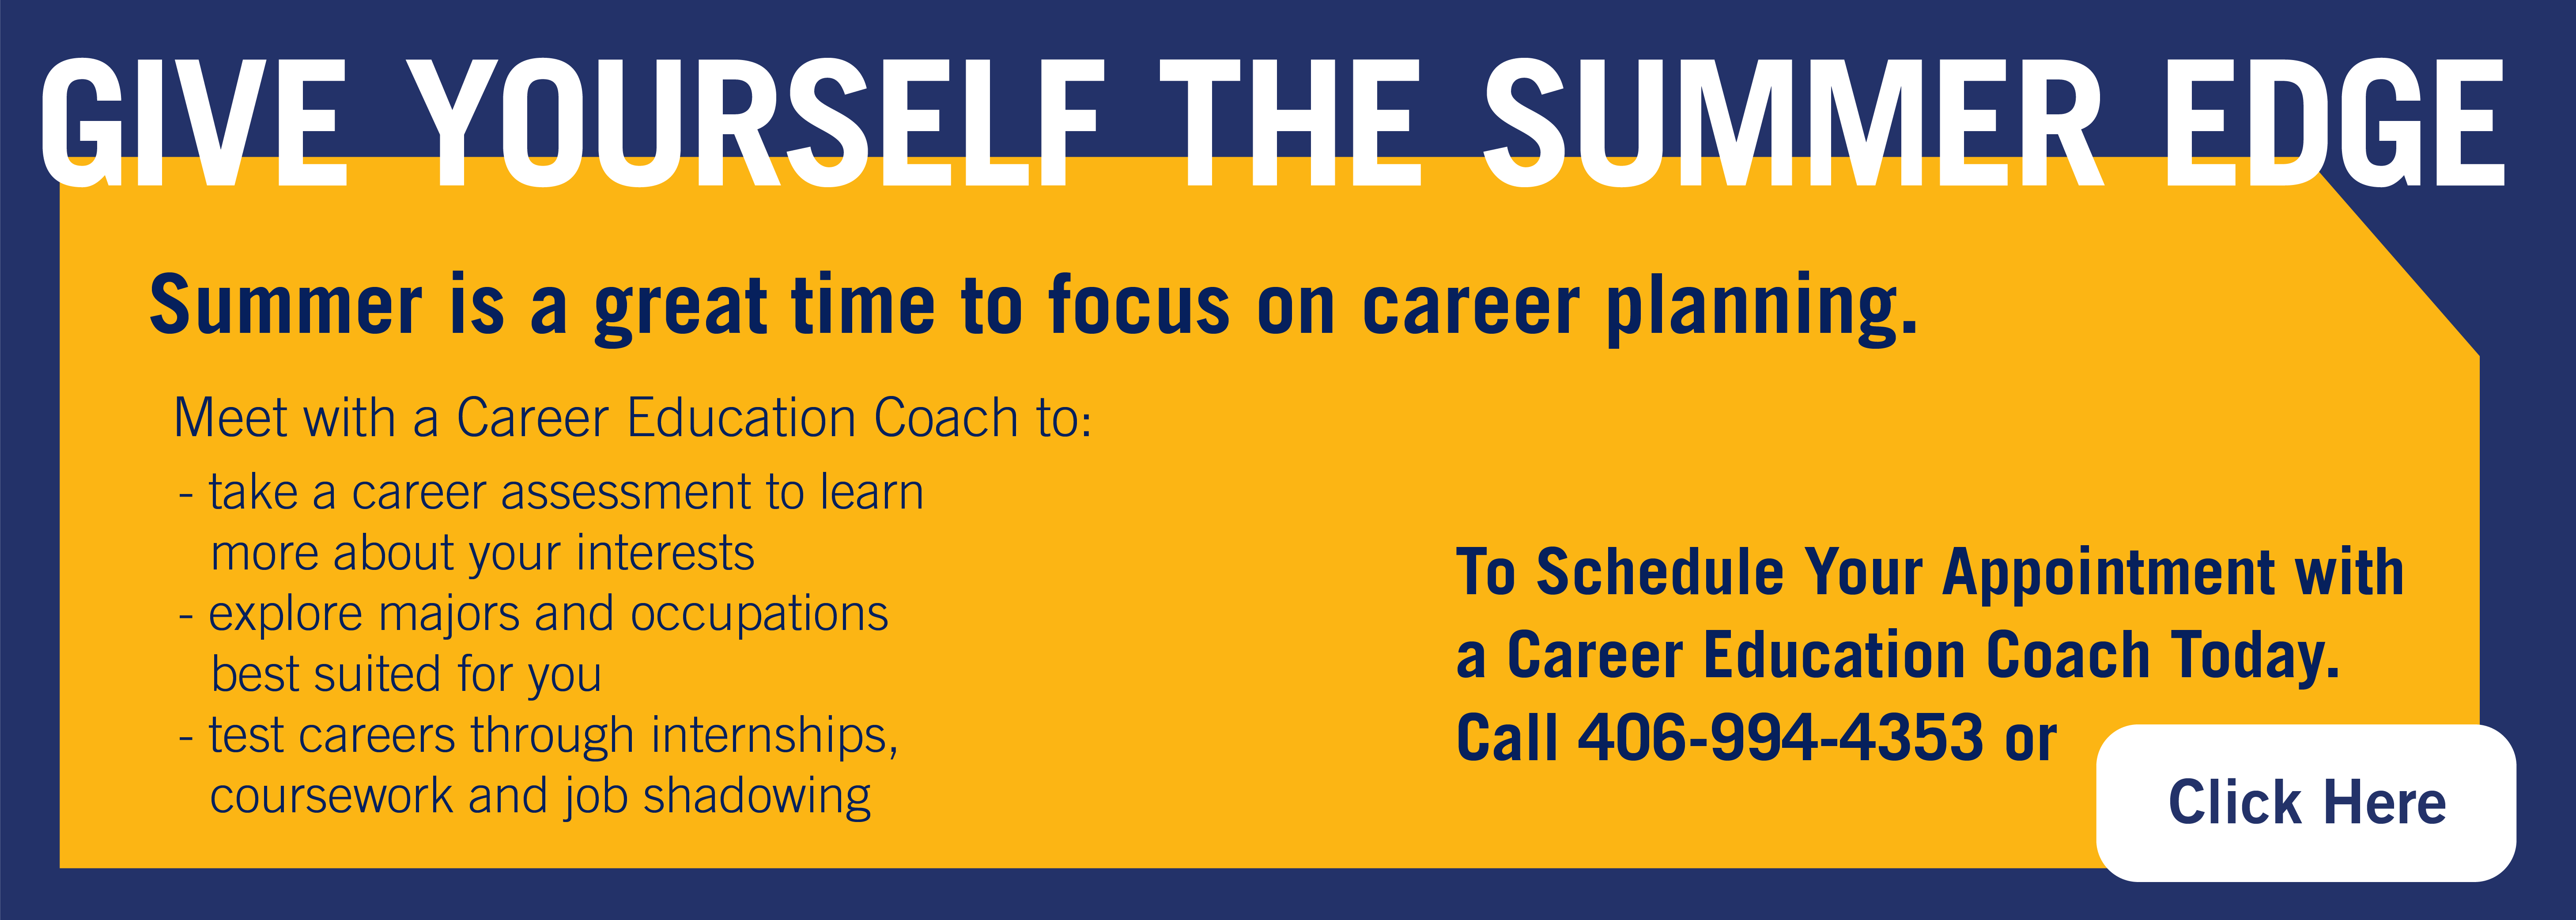 Give yourself the summer edge Summer is a great time to focus on career planning/ Meet with a career education coach to: take a career asessment to learn more about your interests explore majors and occupations best suited for you test careers through internships, coursework and job shadowing Call 406-994-4353 or click this banner